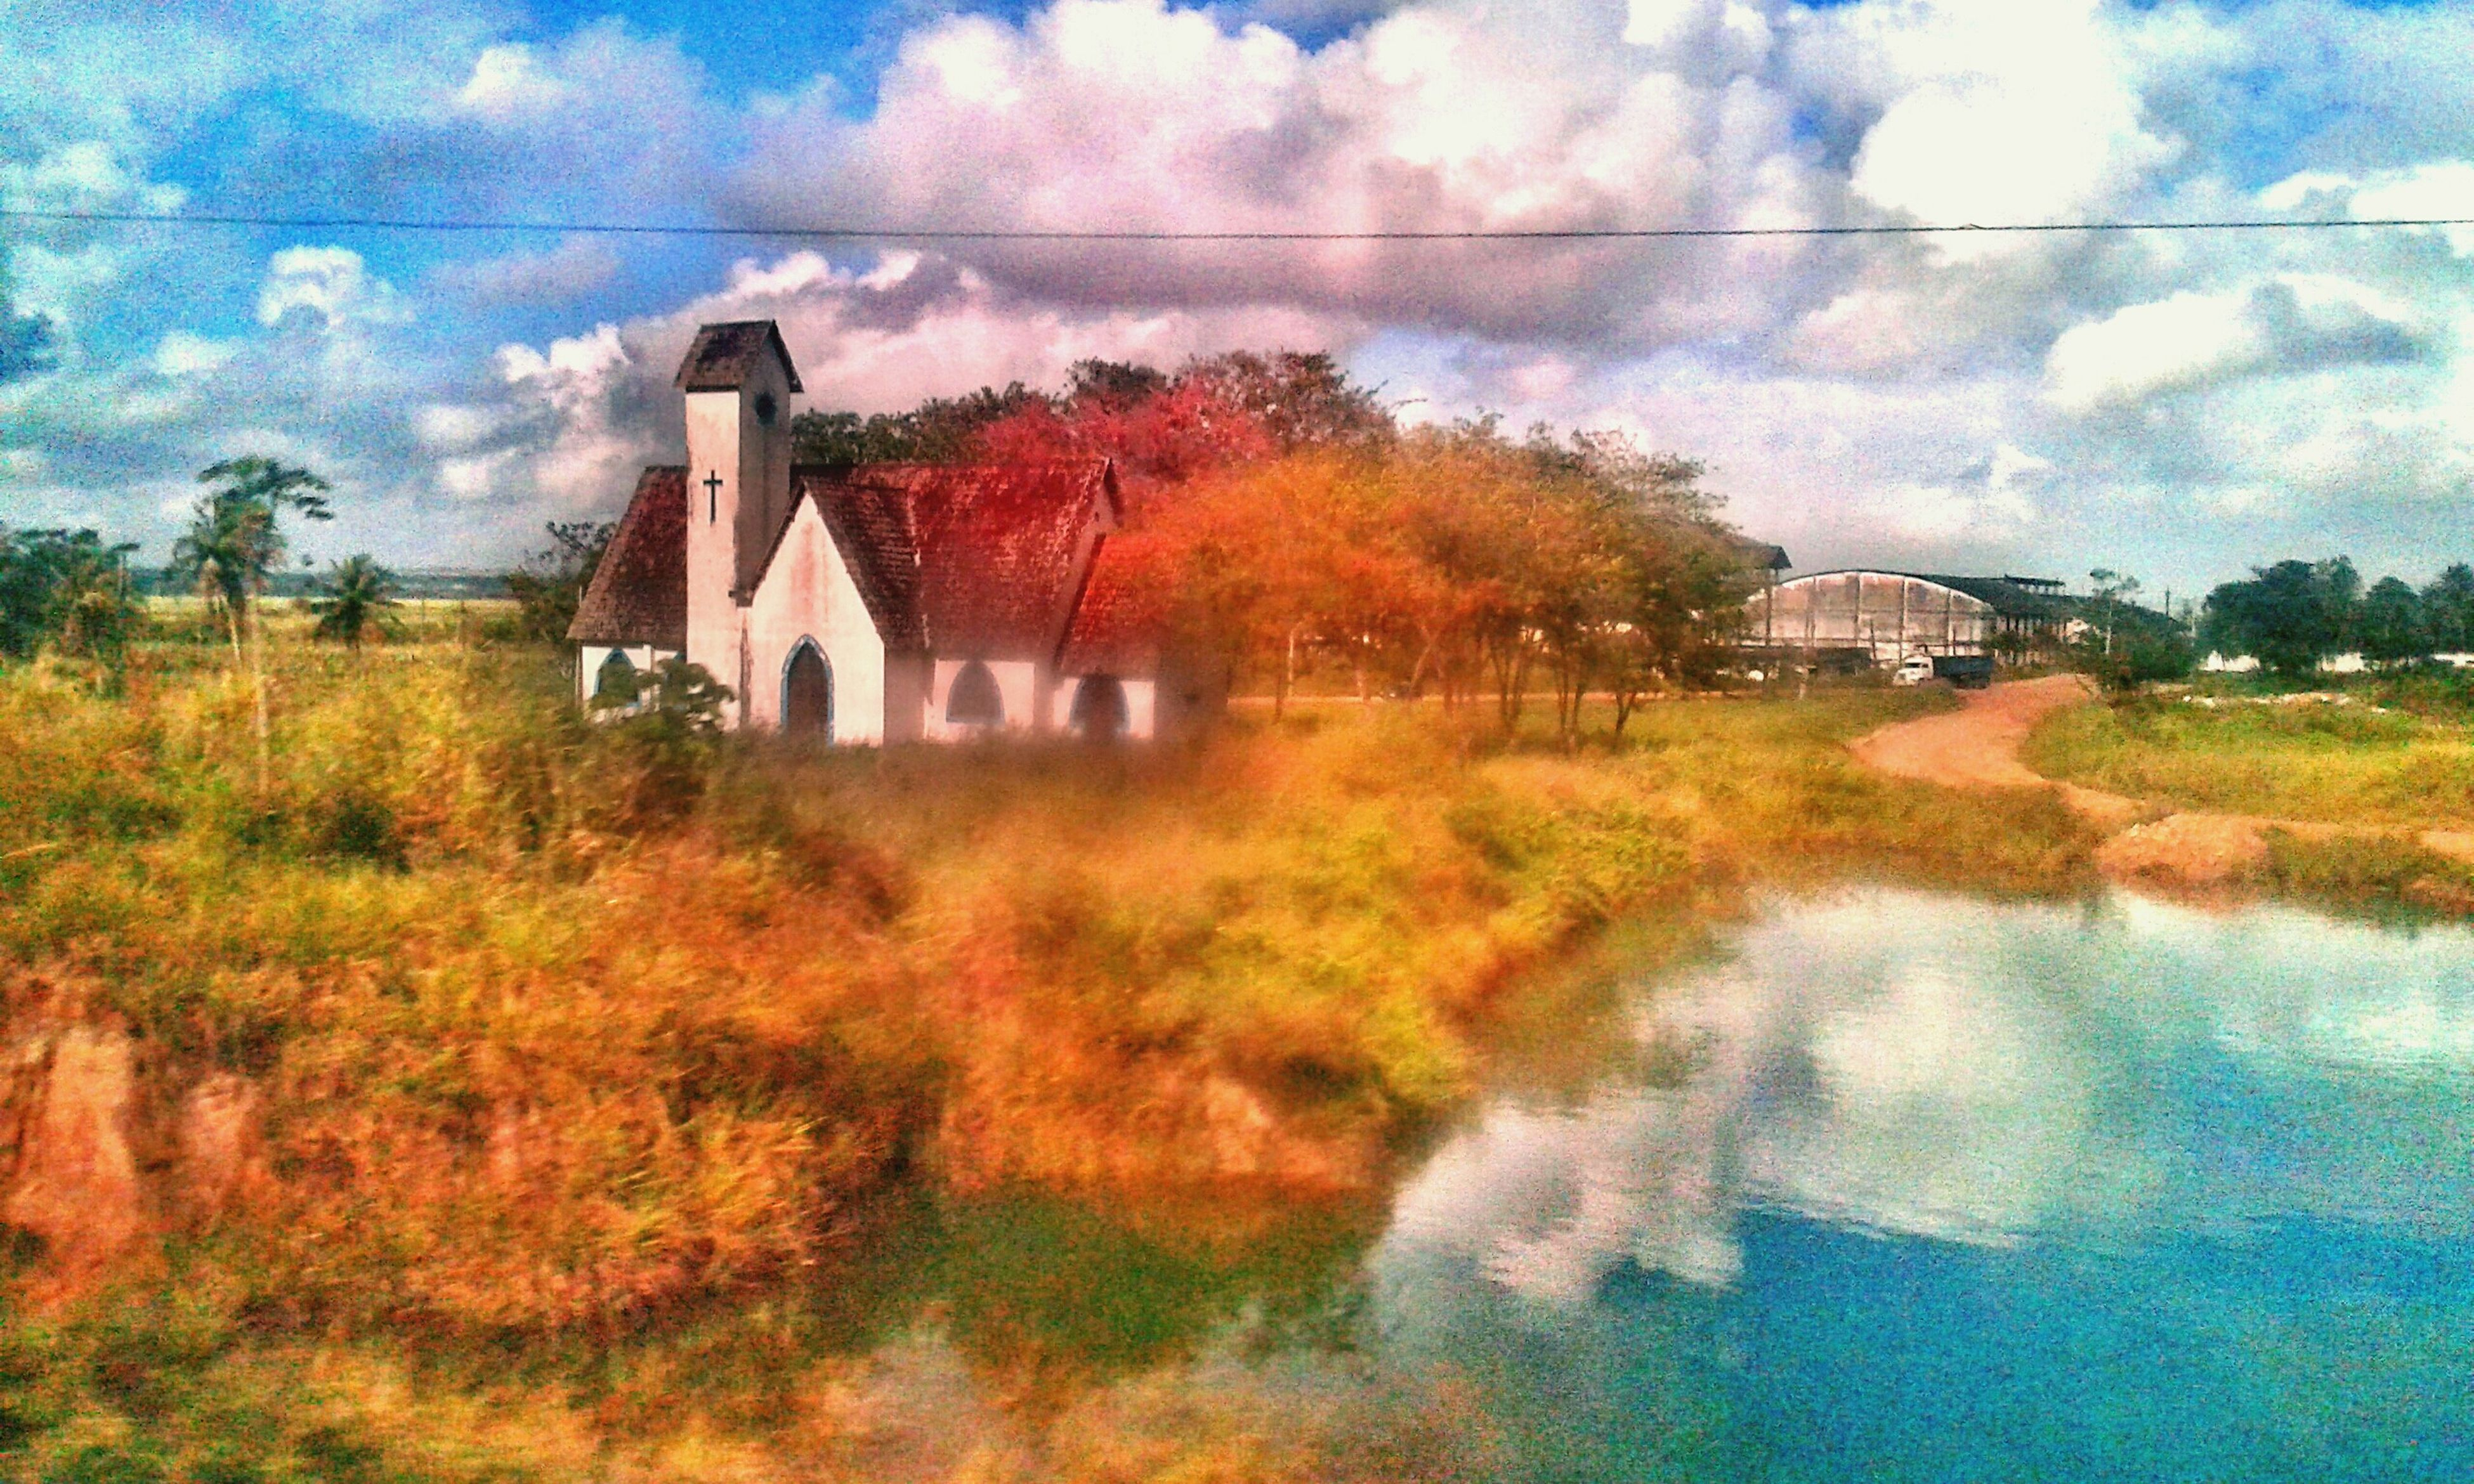 architecture, building exterior, built structure, sky, cloud - sky, tree, reflection, water, grass, house, cloud, nature, puddle, field, cloudy, outdoors, no people, growth, residential structure, day